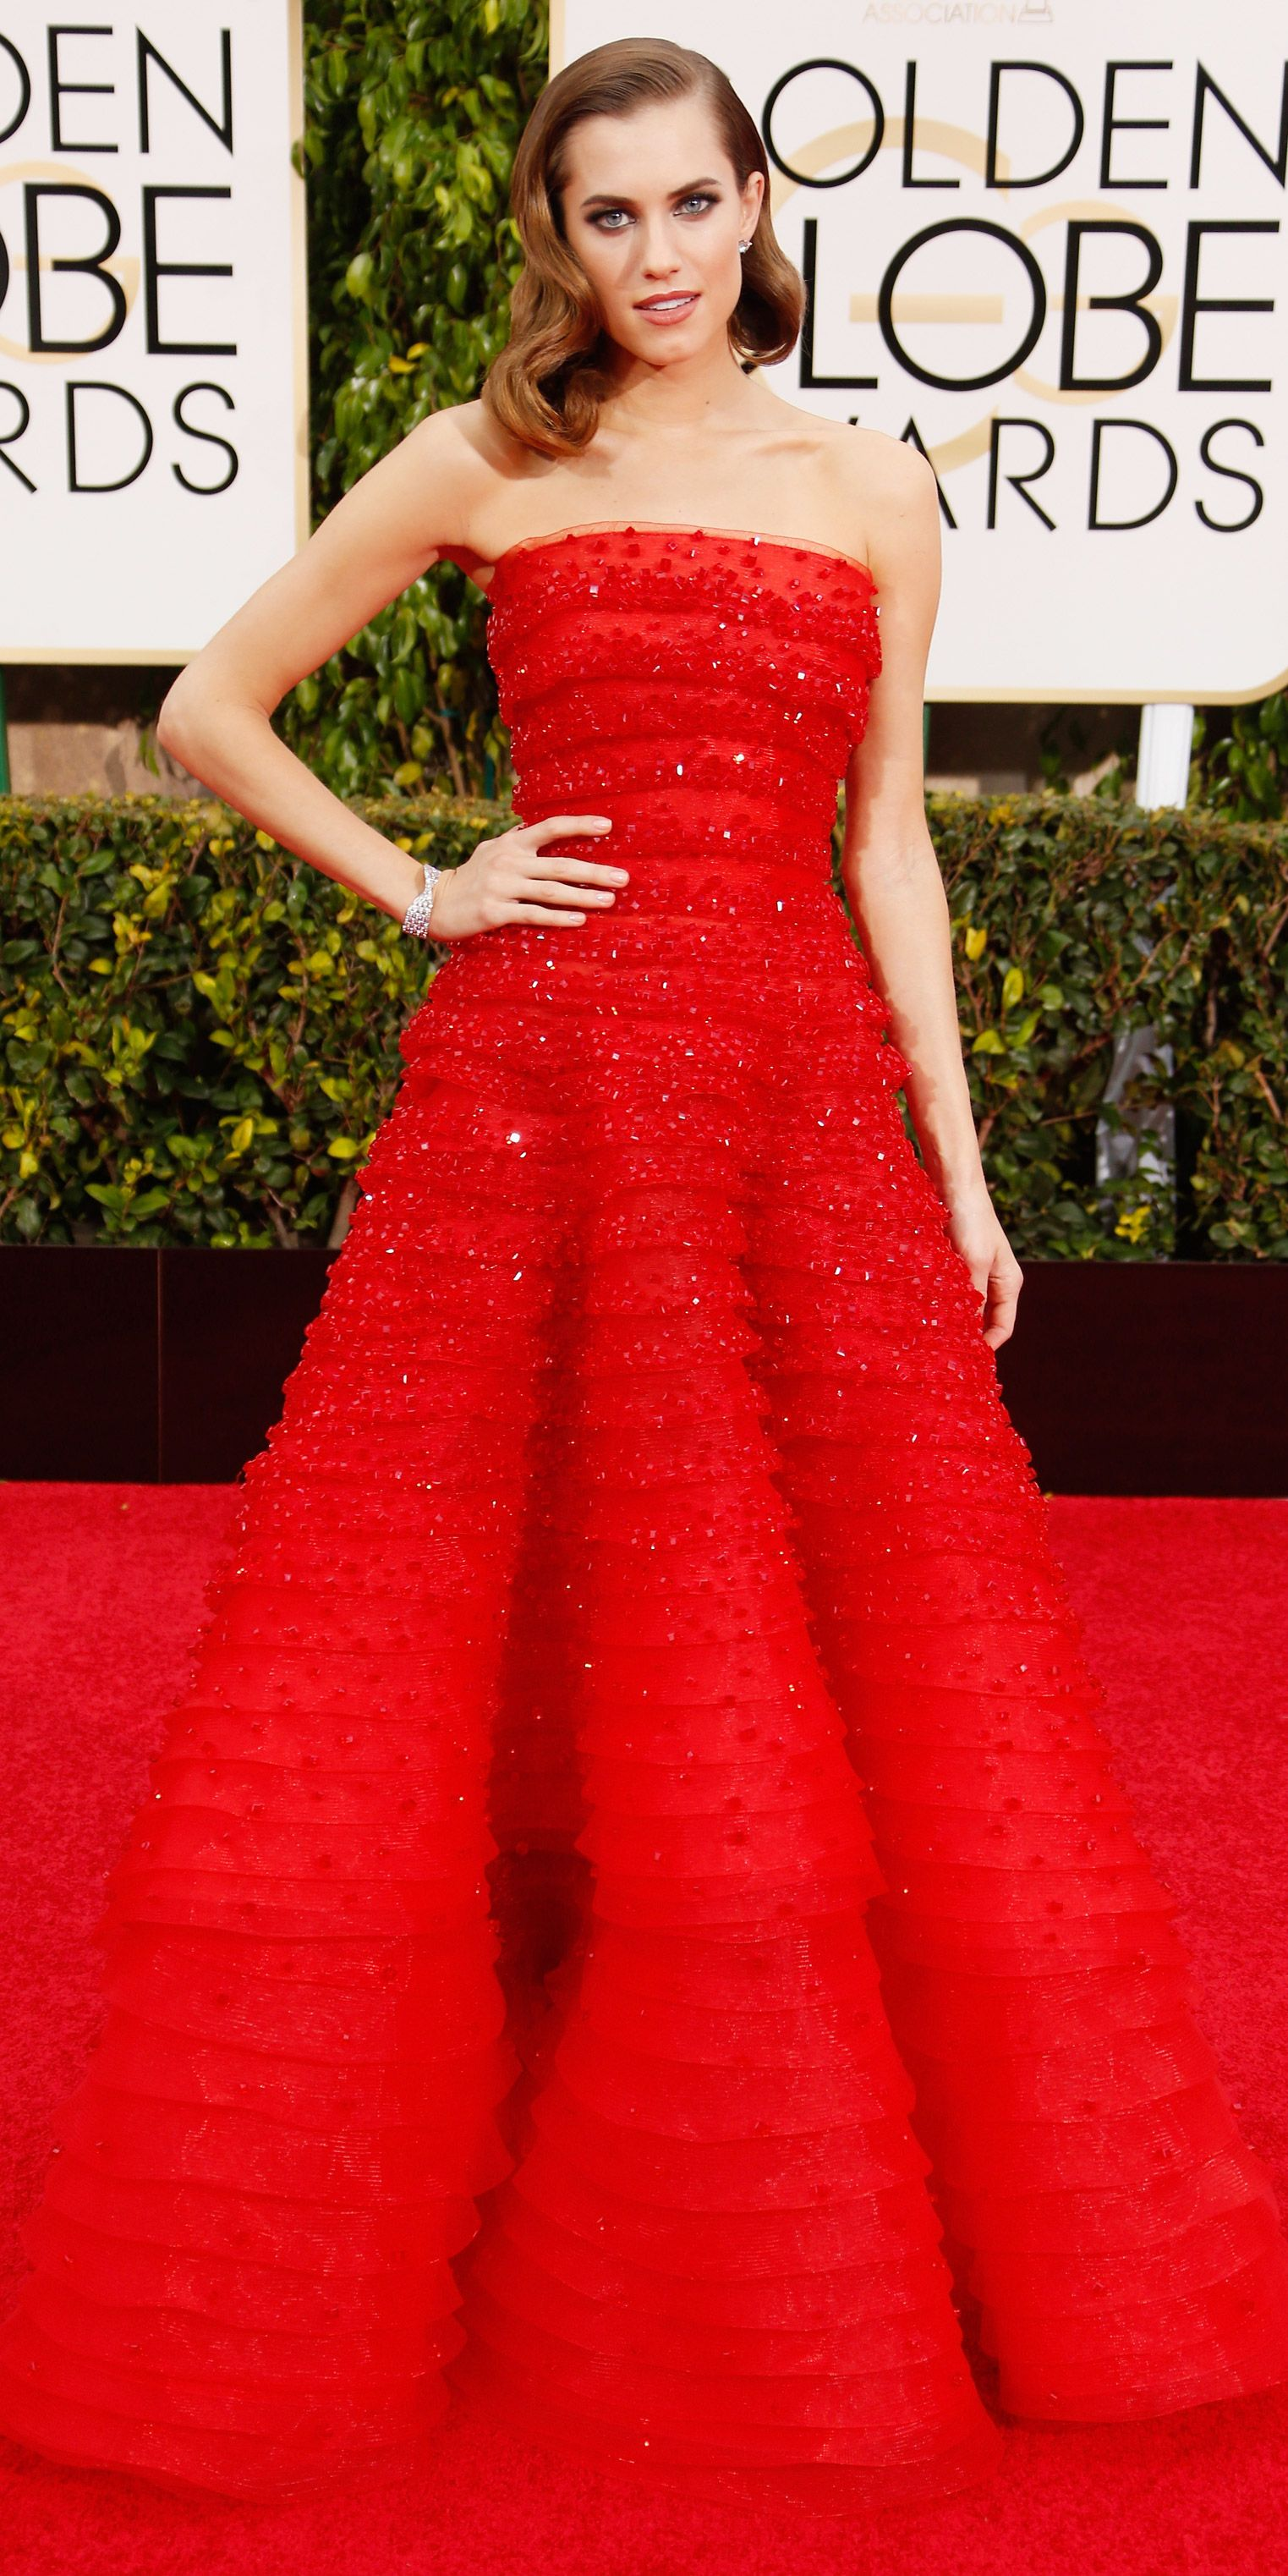 Allison Williams's Red Carpet Style - In Armani Privé, 2015 from InStyle.com